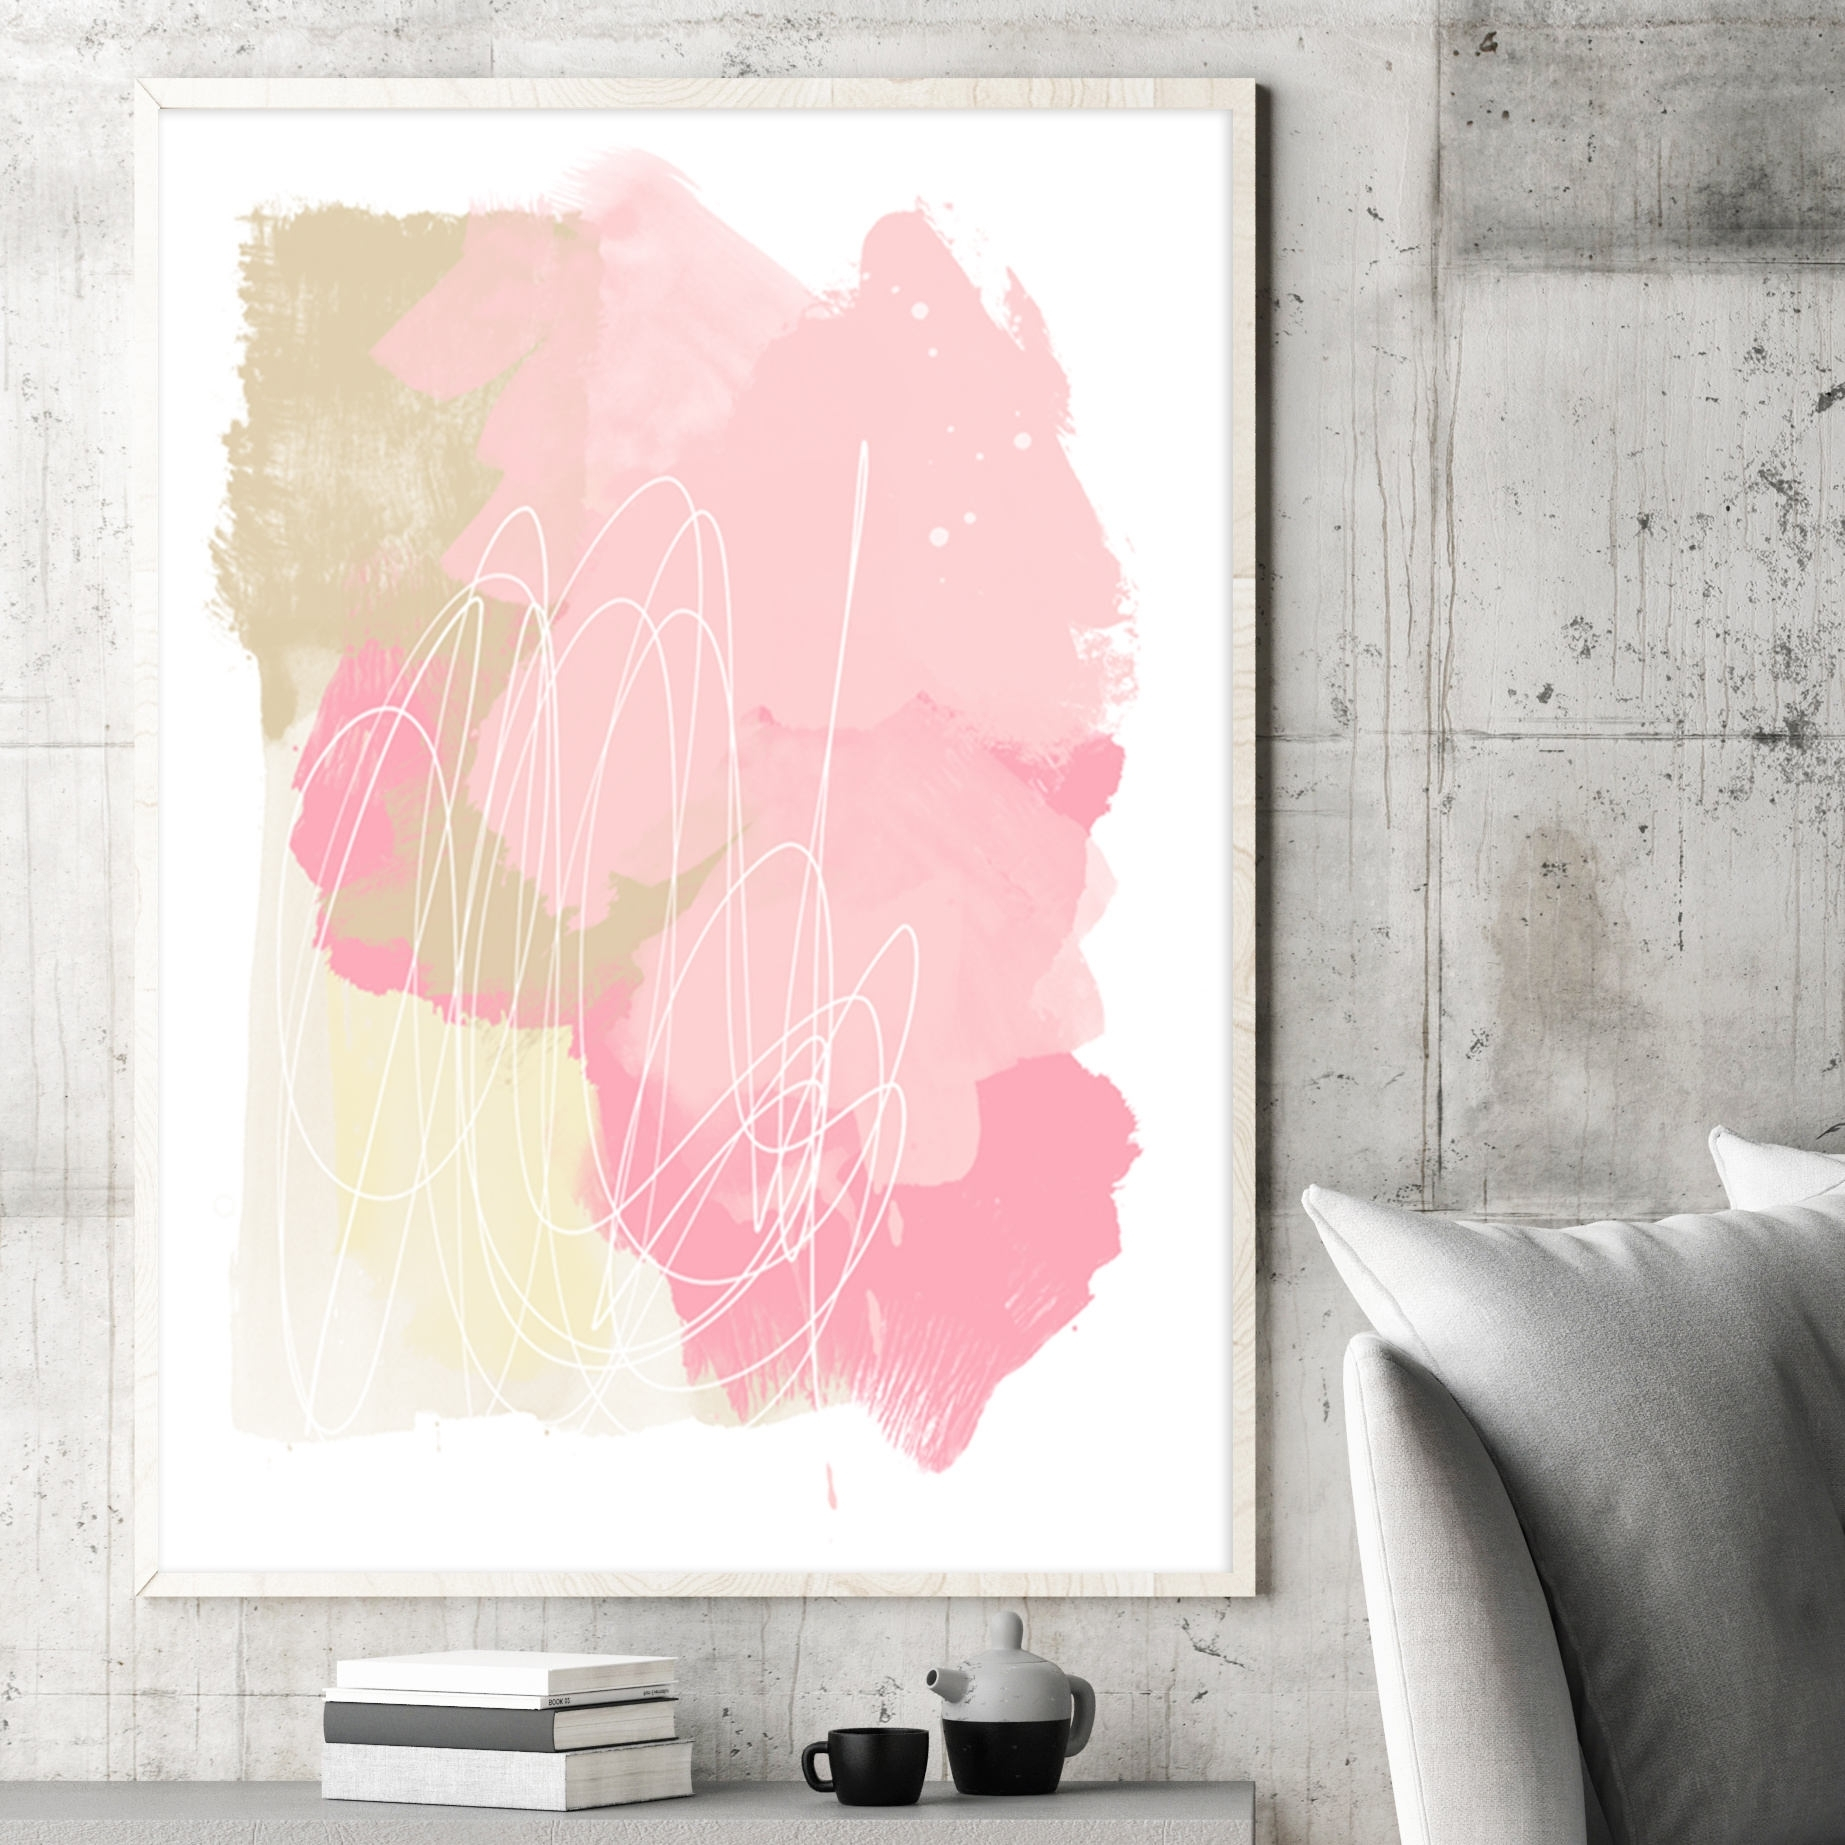 Pale Pink Abstract Art, Pink And Beige Painting, Printable Modern Inside Newest Pink Abstract Wall Art (View 14 of 20)